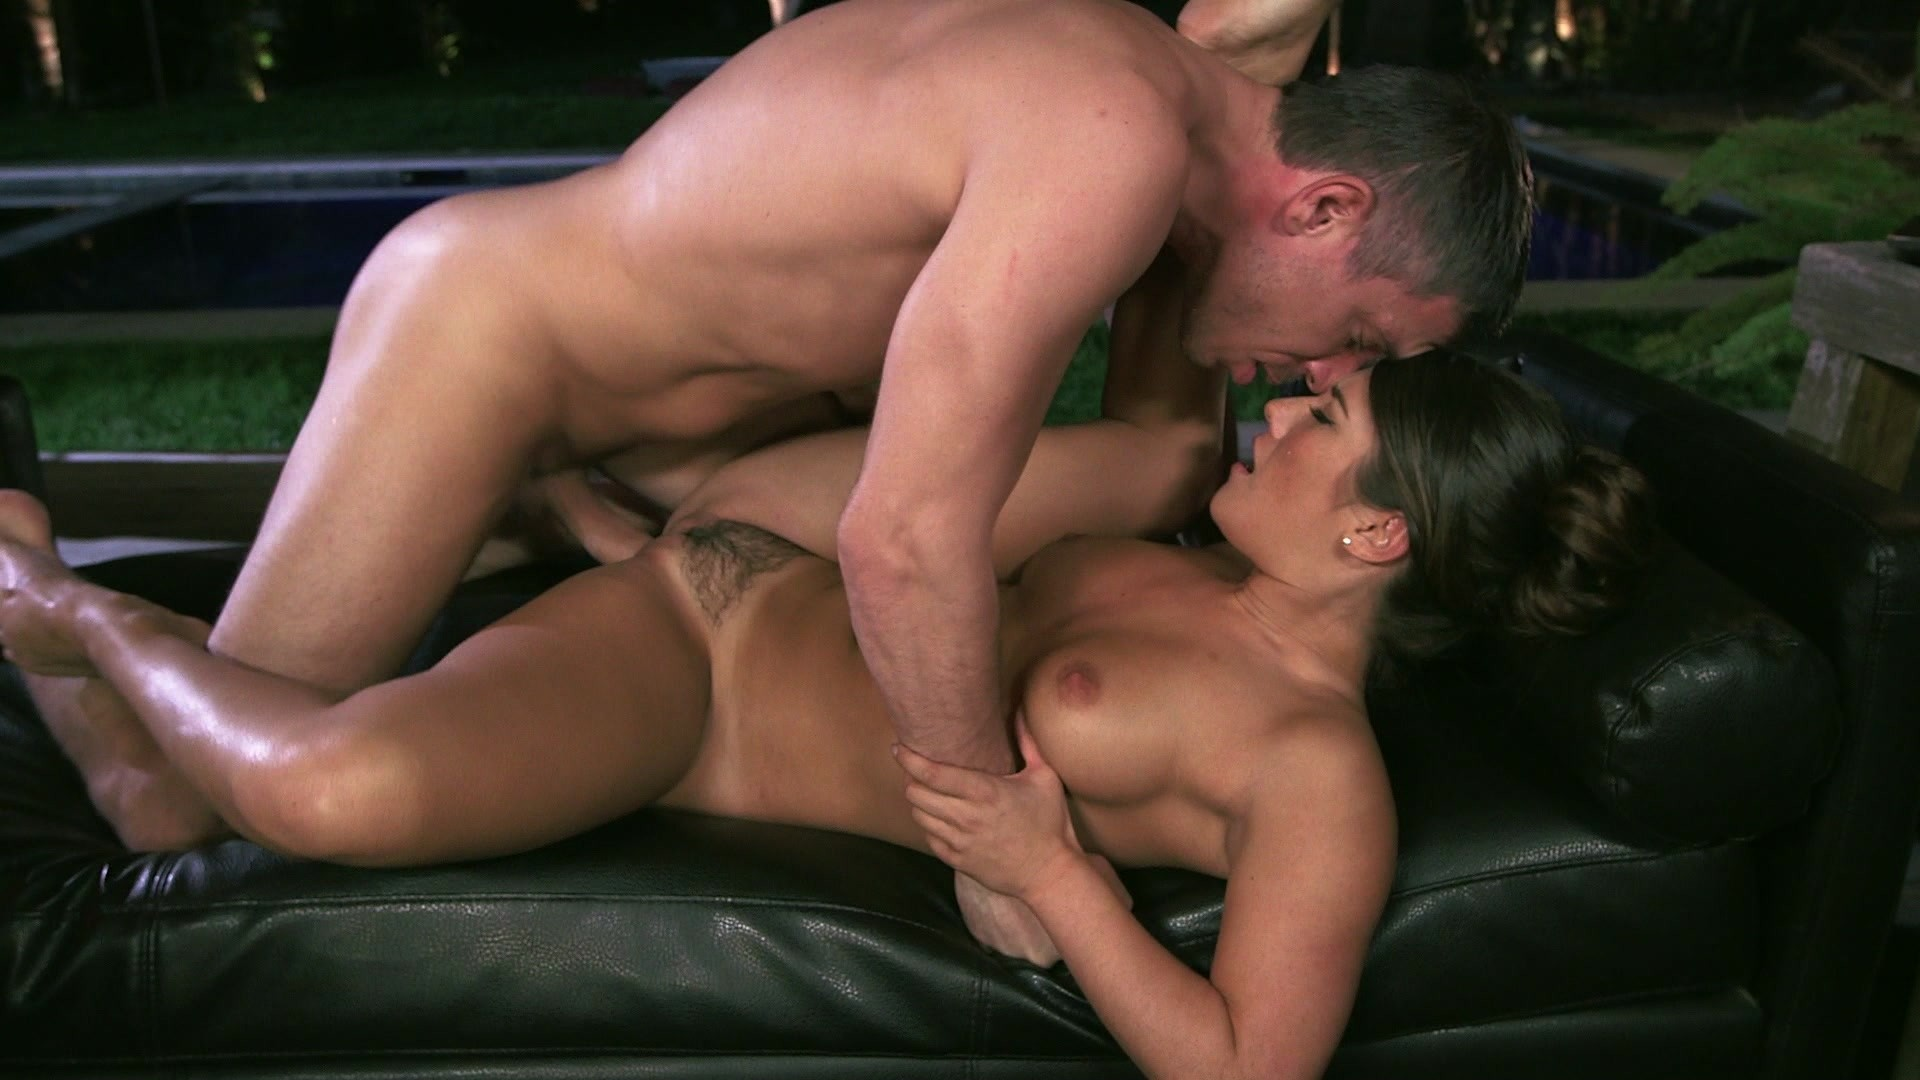 Beautiful Brunette Eva Lovia Gets Licked and Fucked by Hung Stud Mick Blue and S... Starring: Mick Blue Eva Lovia Length: 25 min